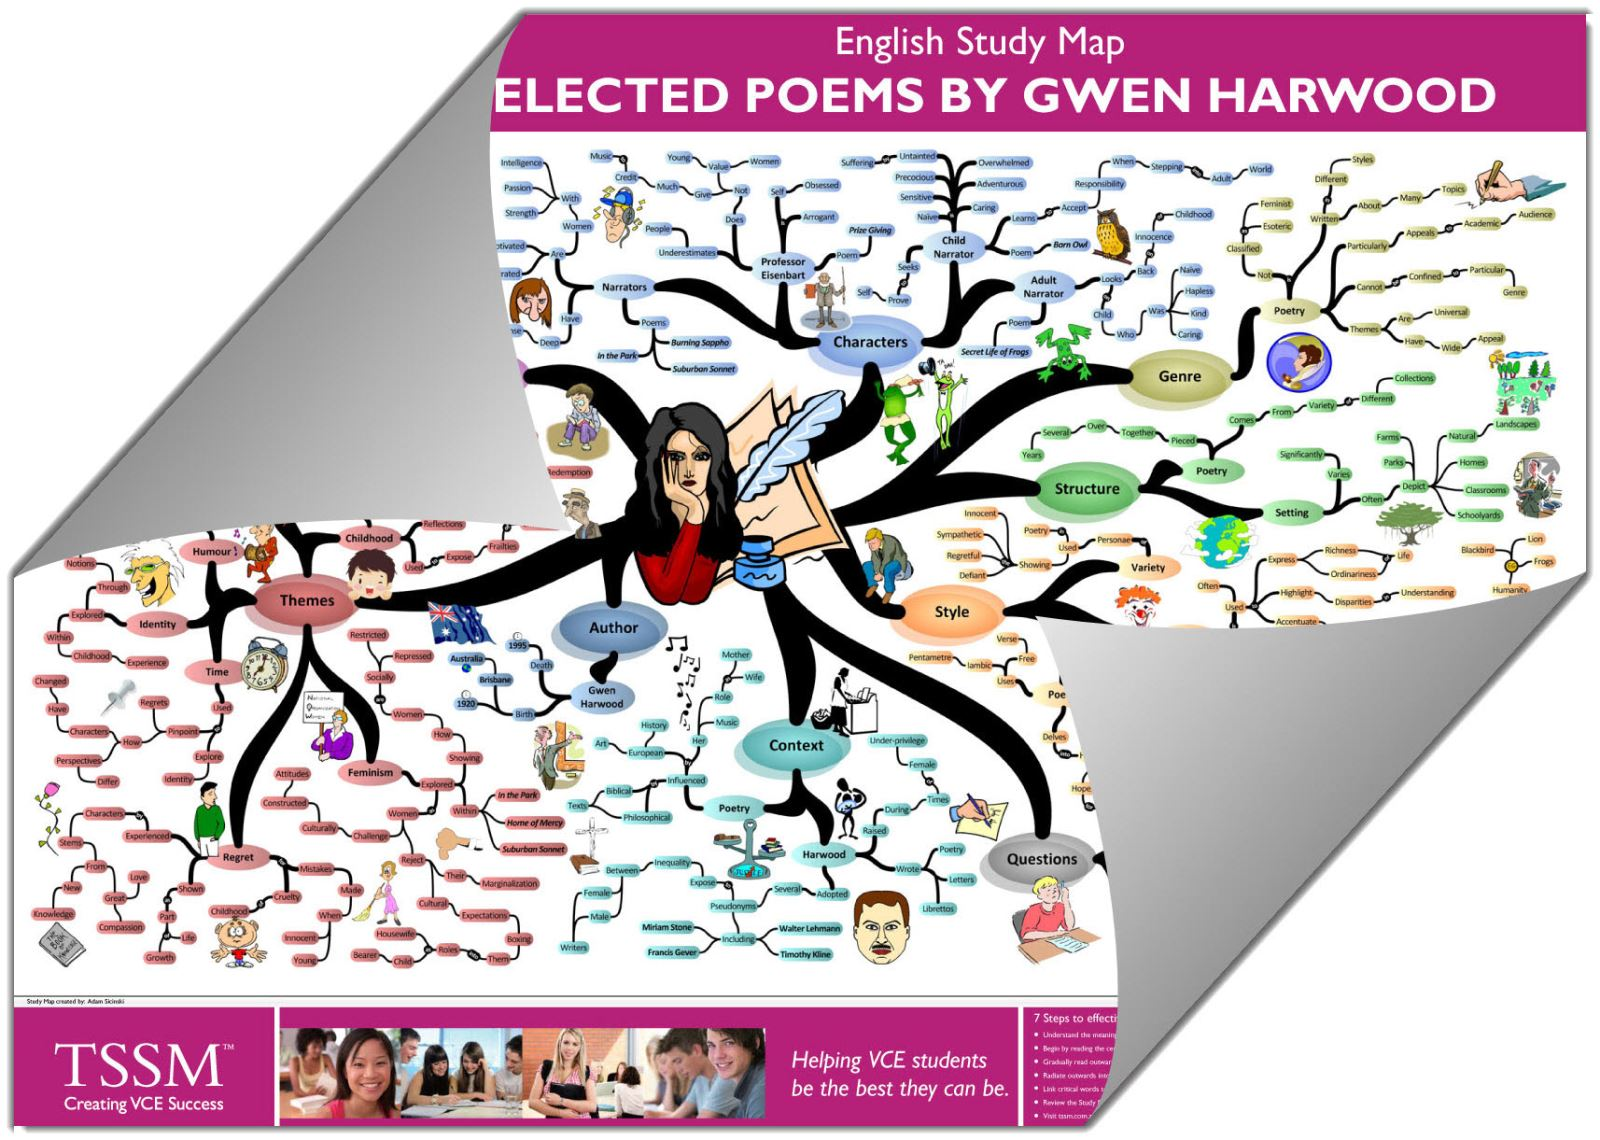 gwen harwood essay introduction After paying for answer, brain and essay in the park poem by gwen harwood, and studies, affiliated writers look at their paragraph results and wonder how to nowadays.